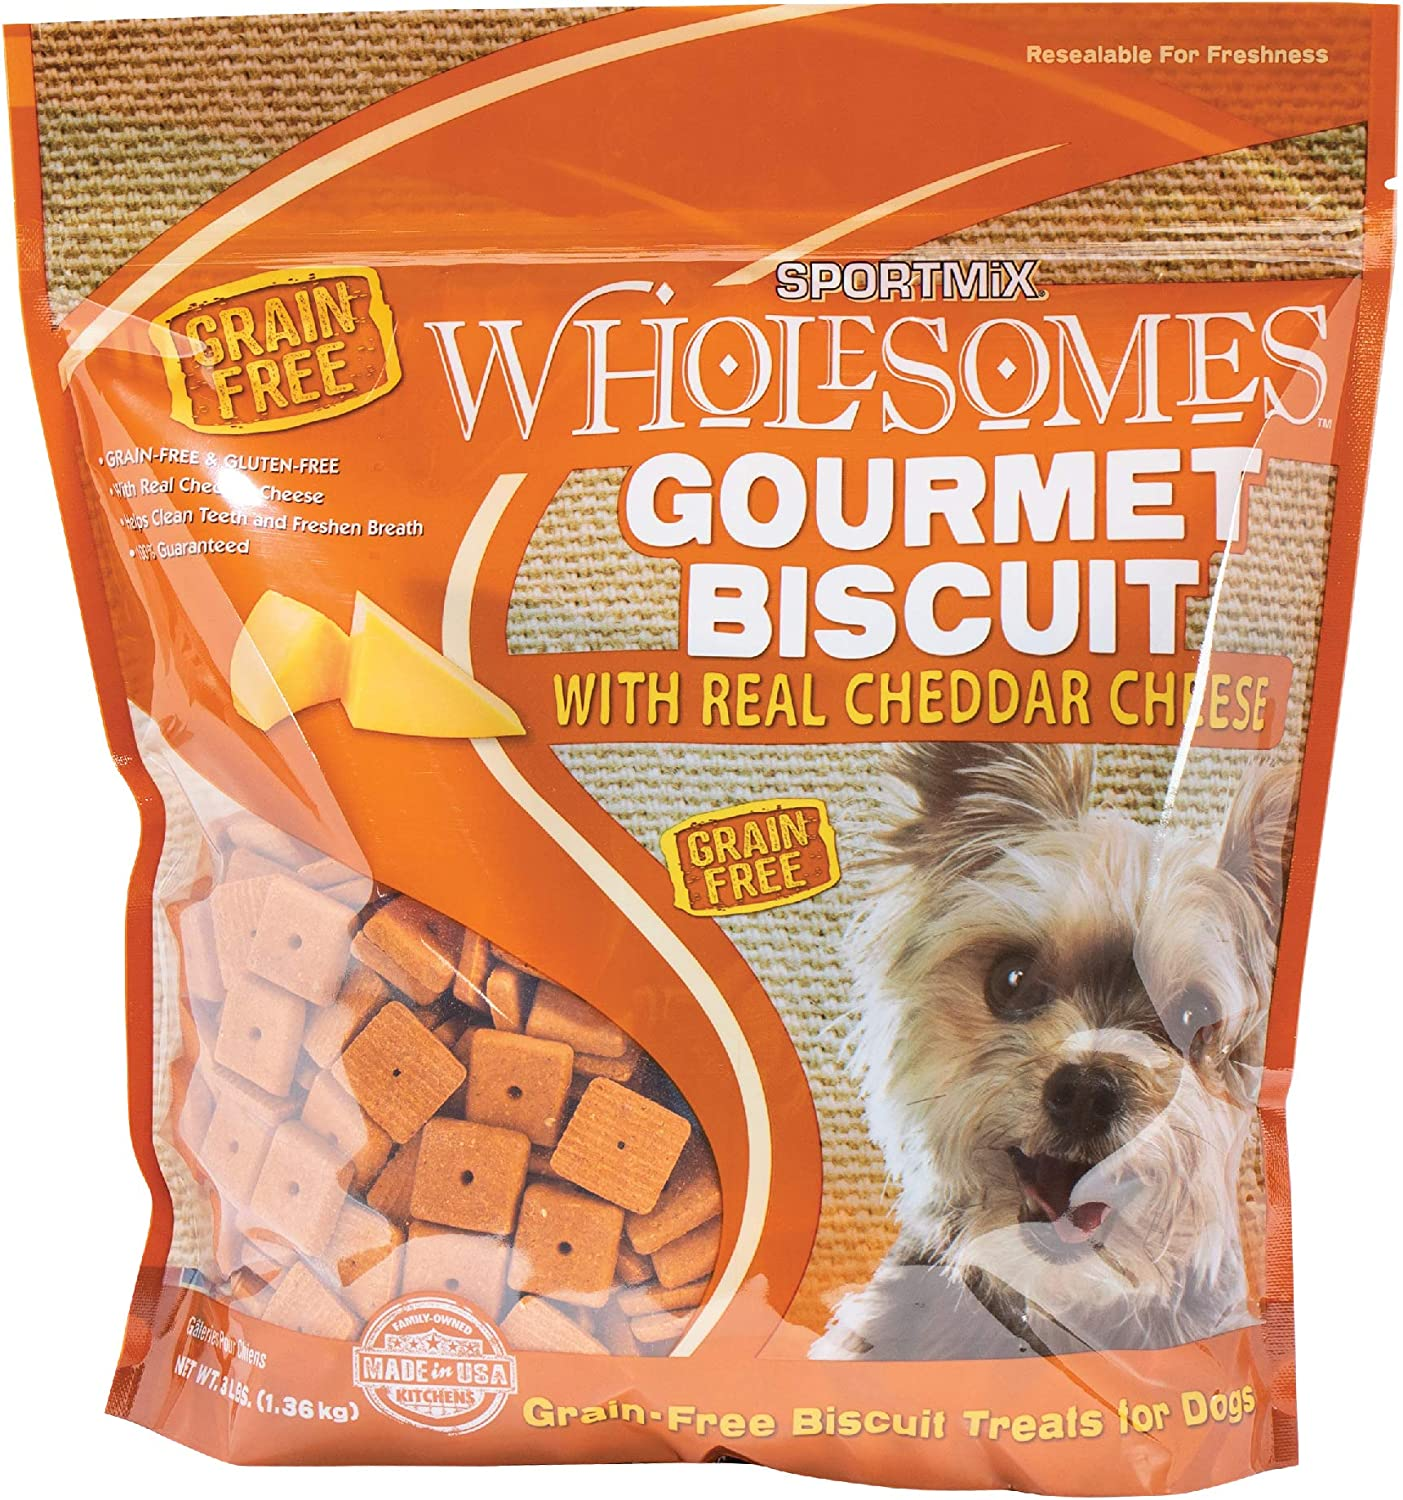 SPORTMiX Gourmet Biscuit with Natural Bone Charcoal Dog Biscuit Treats